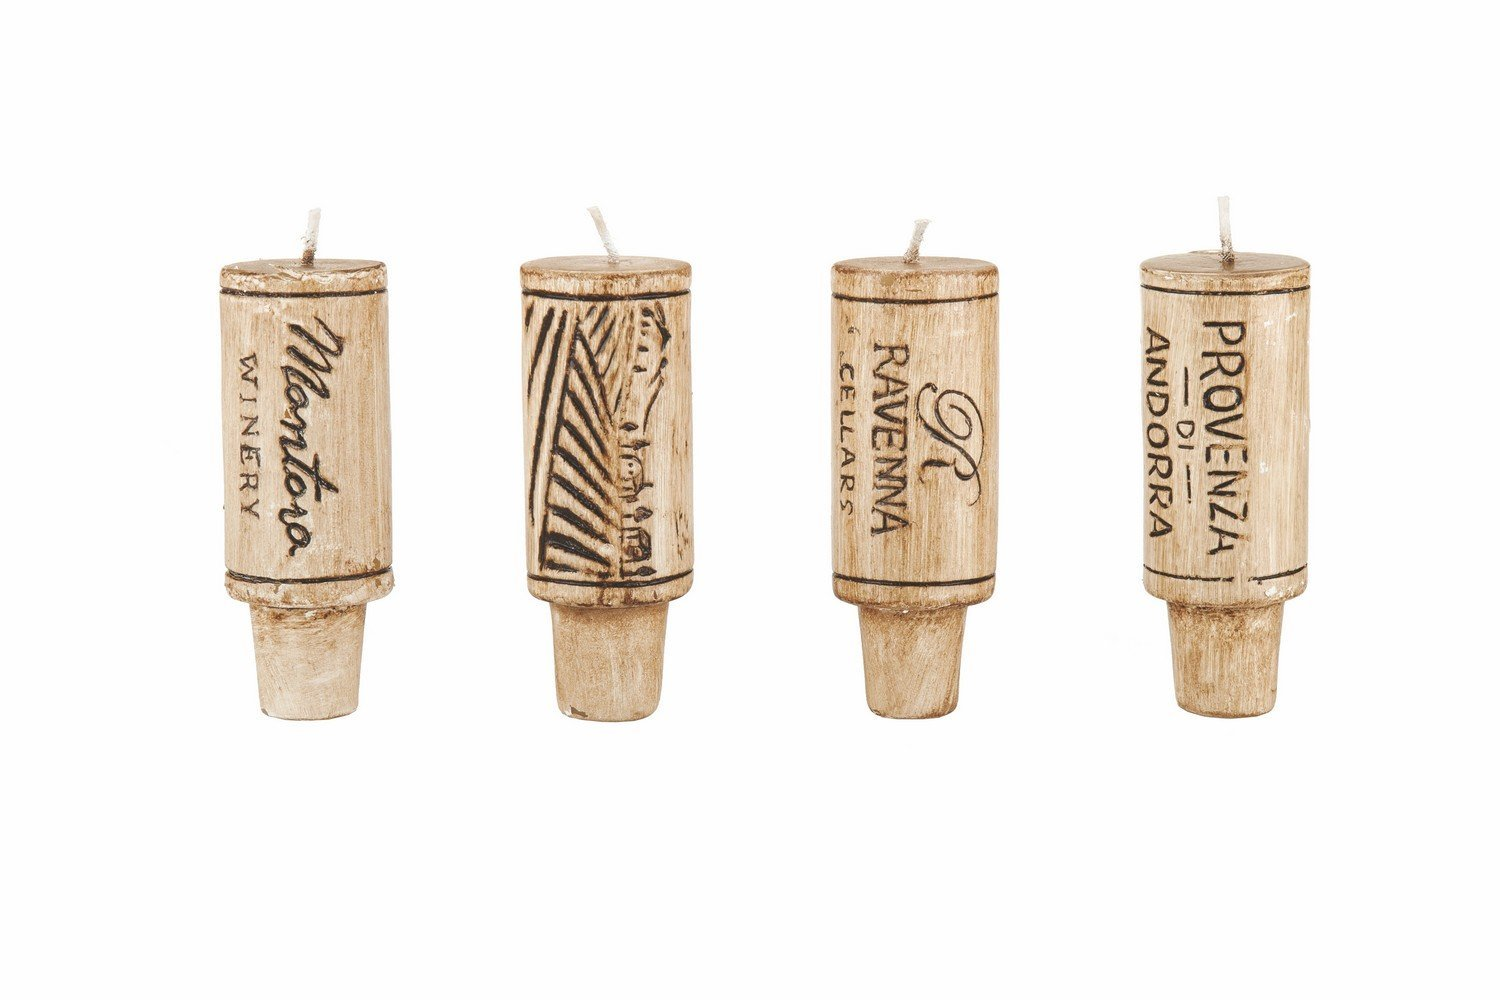 True Fabrications Candle Wax, Small Rustic Decorative Home Wine Cork Wax Candle Set, Set of 4 (Sold by Case, Pack of 6)